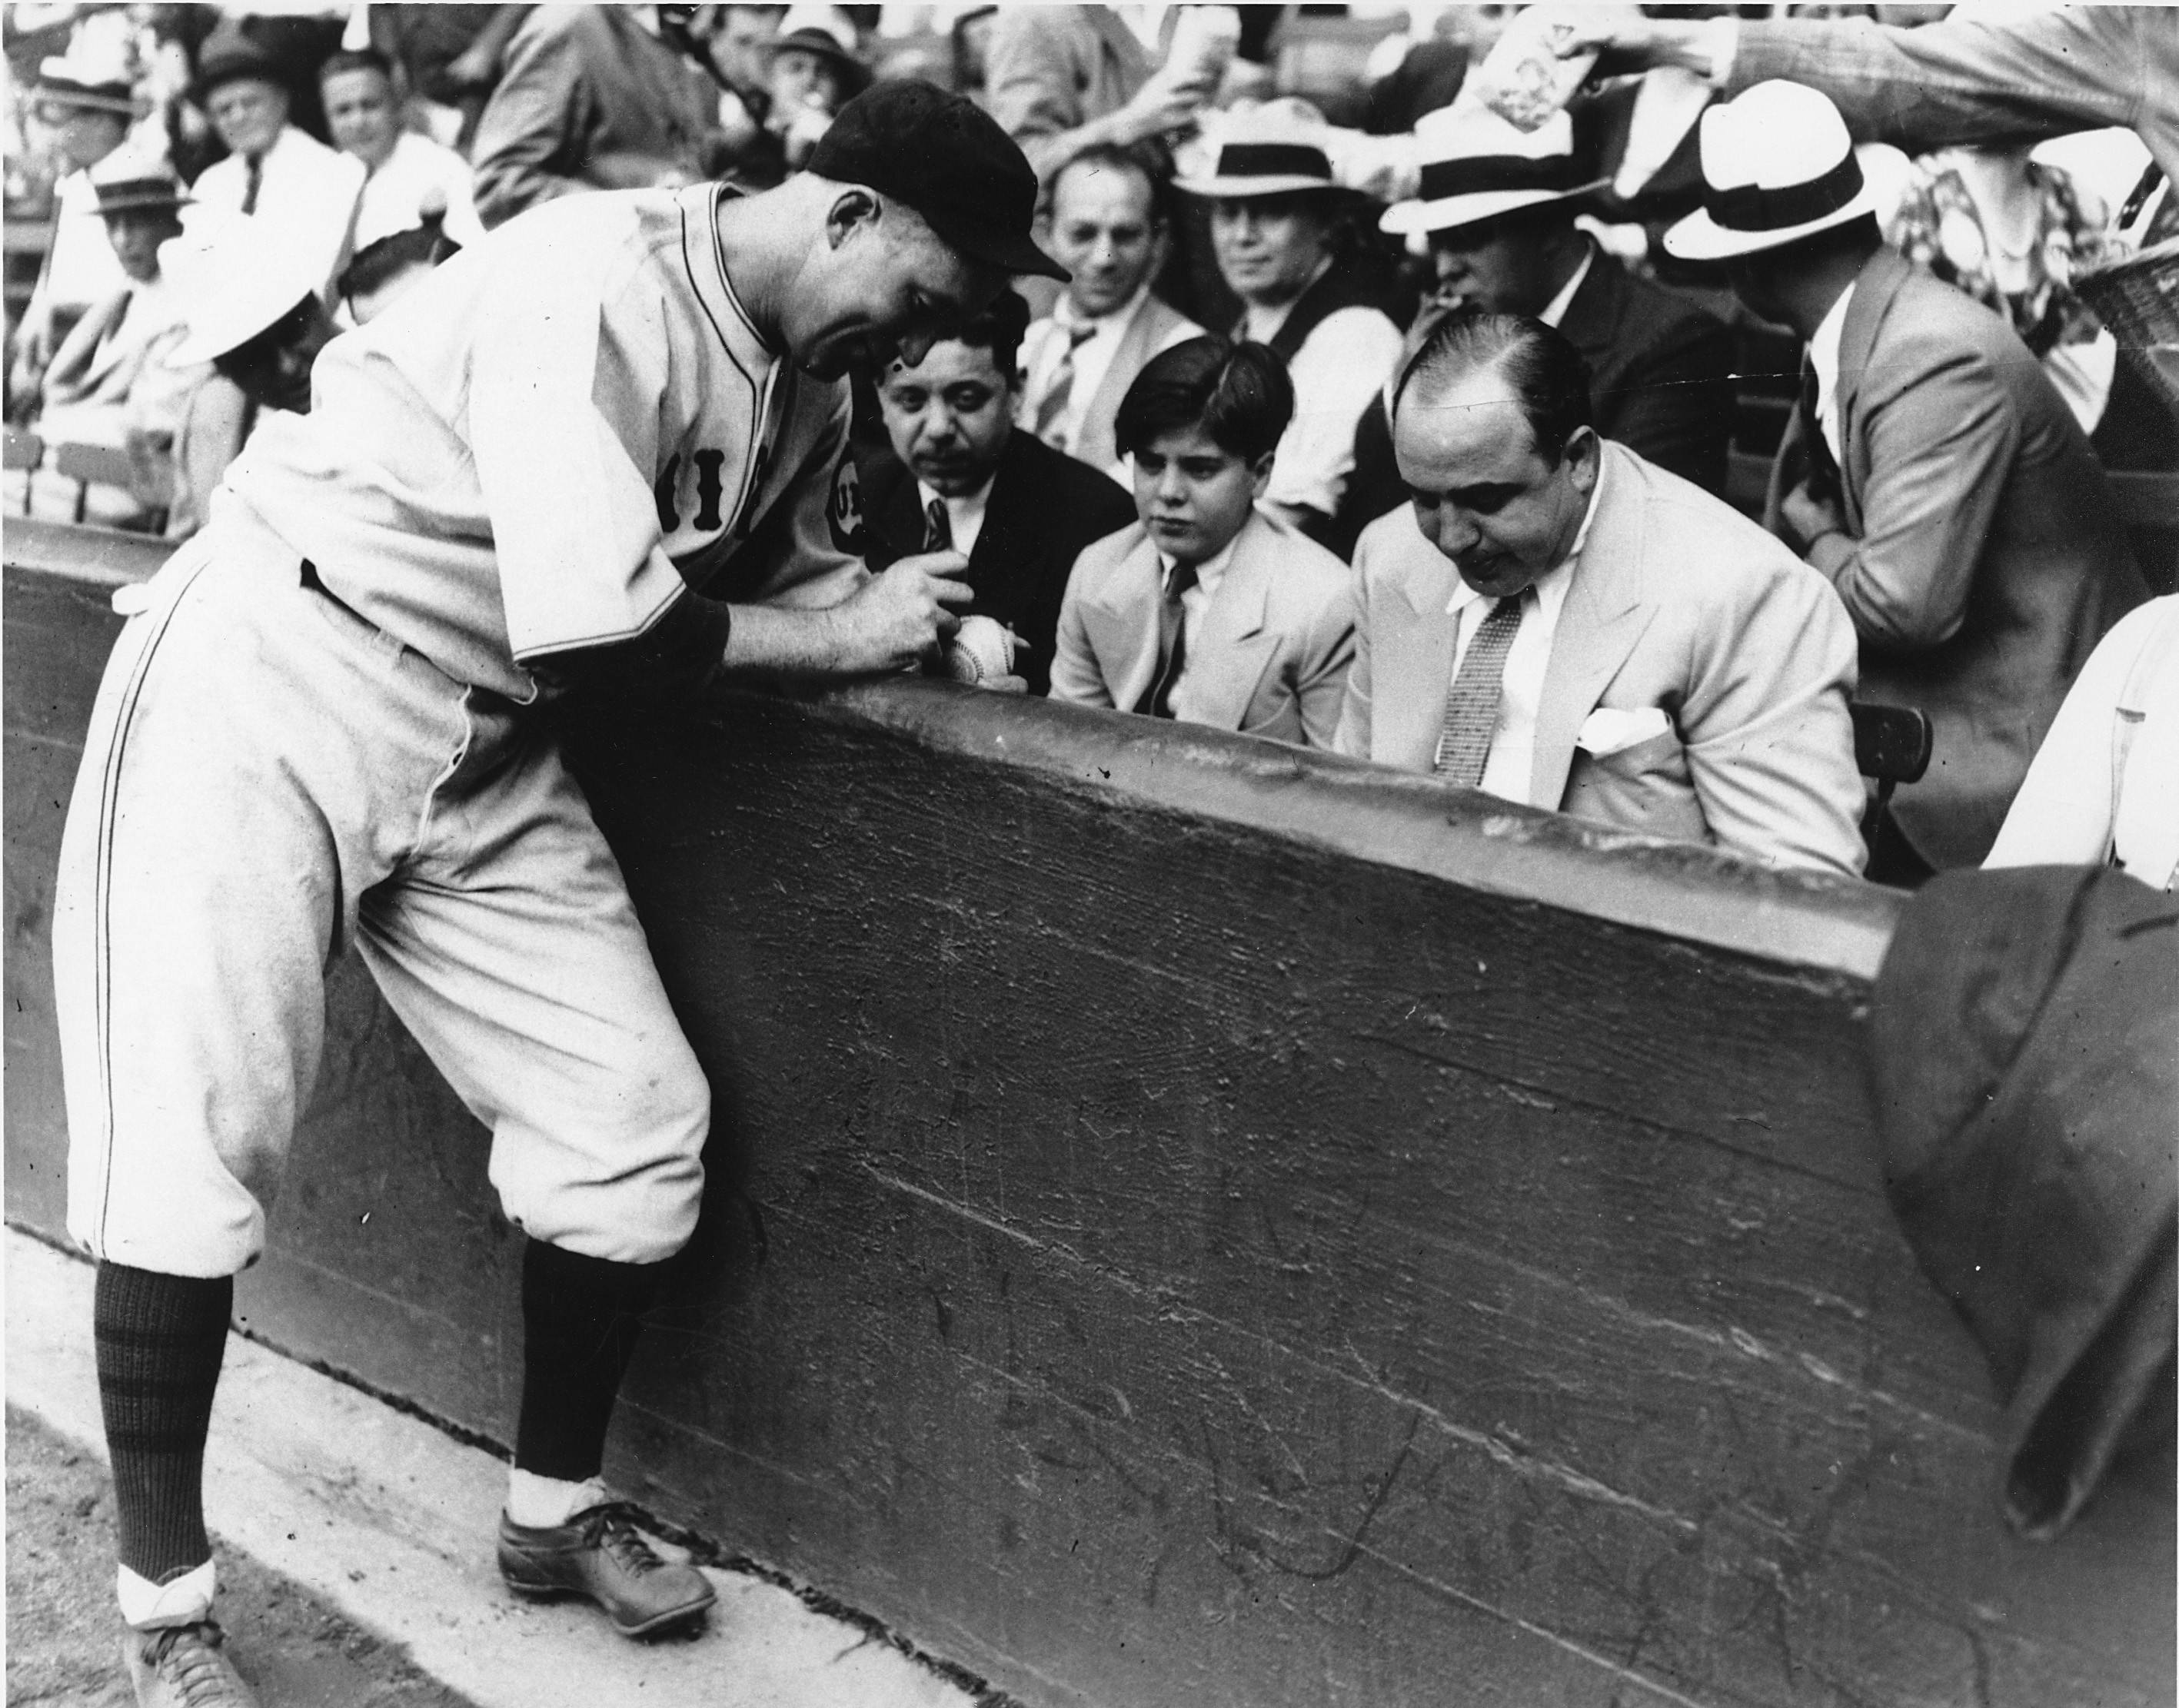 Cubs fan and mobster Al Capone gets an autograph from legendary Cubs catcher Gabby Hartnett during a 1931 charity game between the Cubs and White Sox at Comiskey Park. If Capone had made good on his dream to buy the Cubs, he would have tried to integrate baseball in the 1930s.